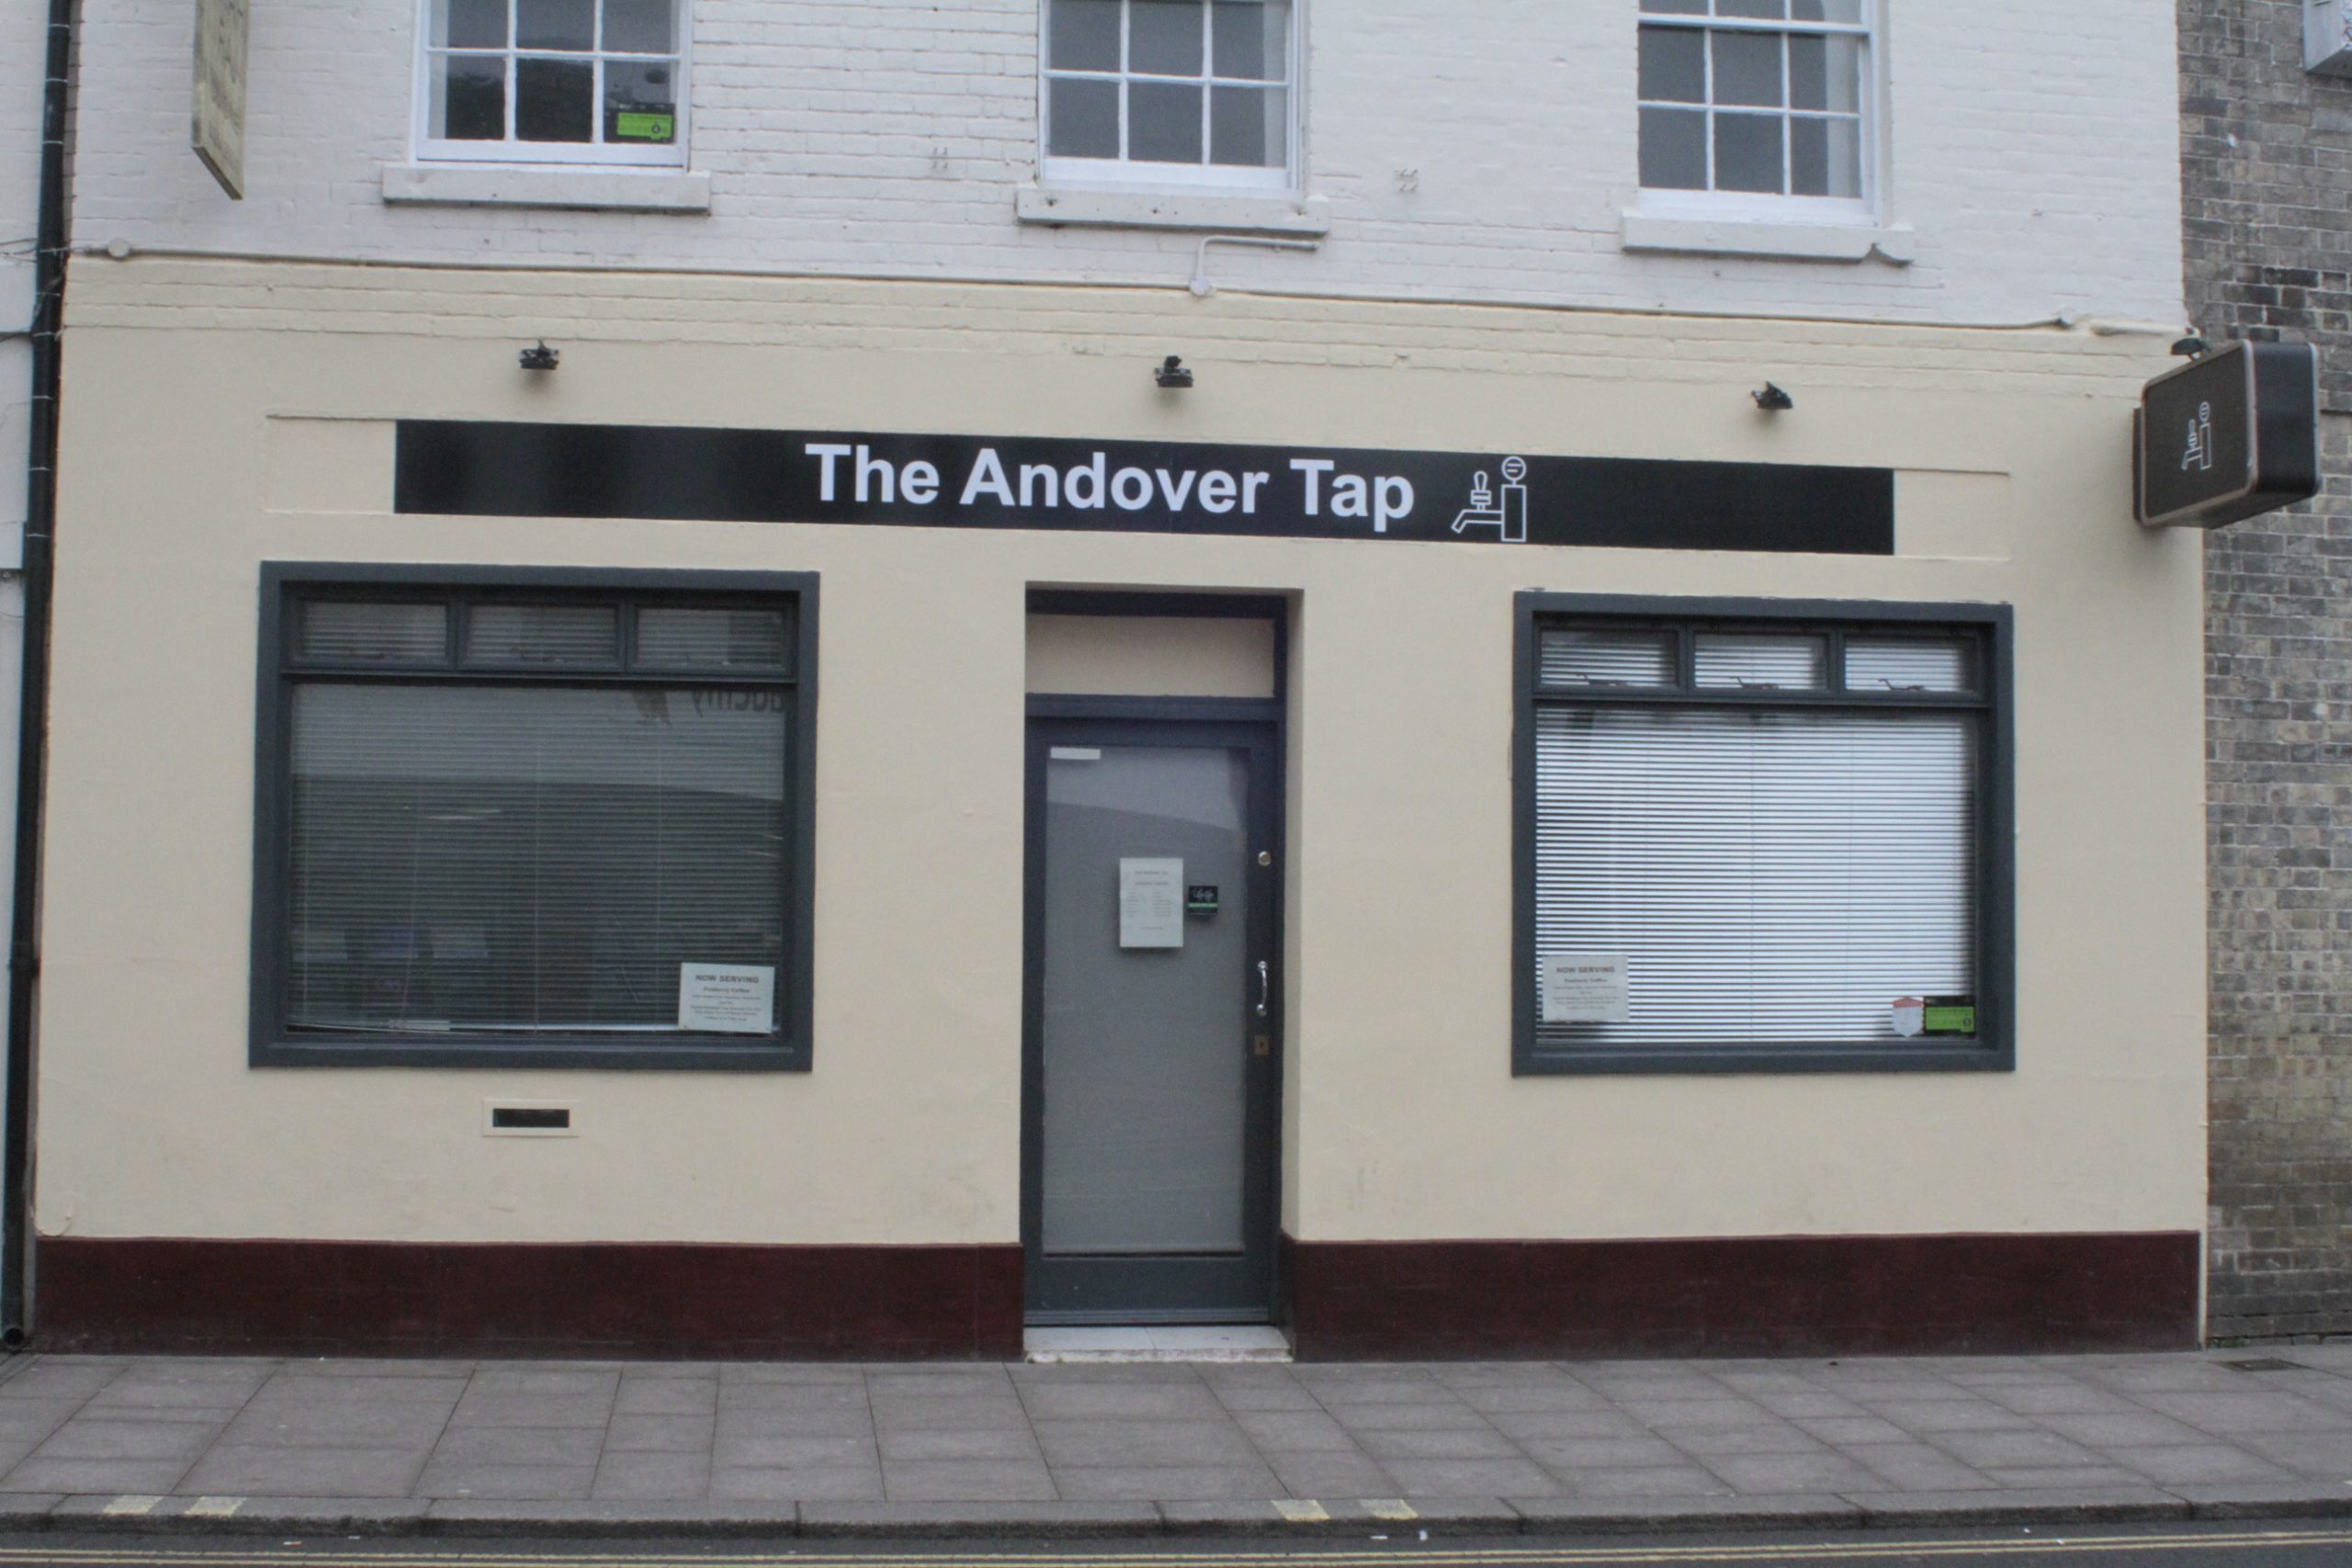 Andover Tap